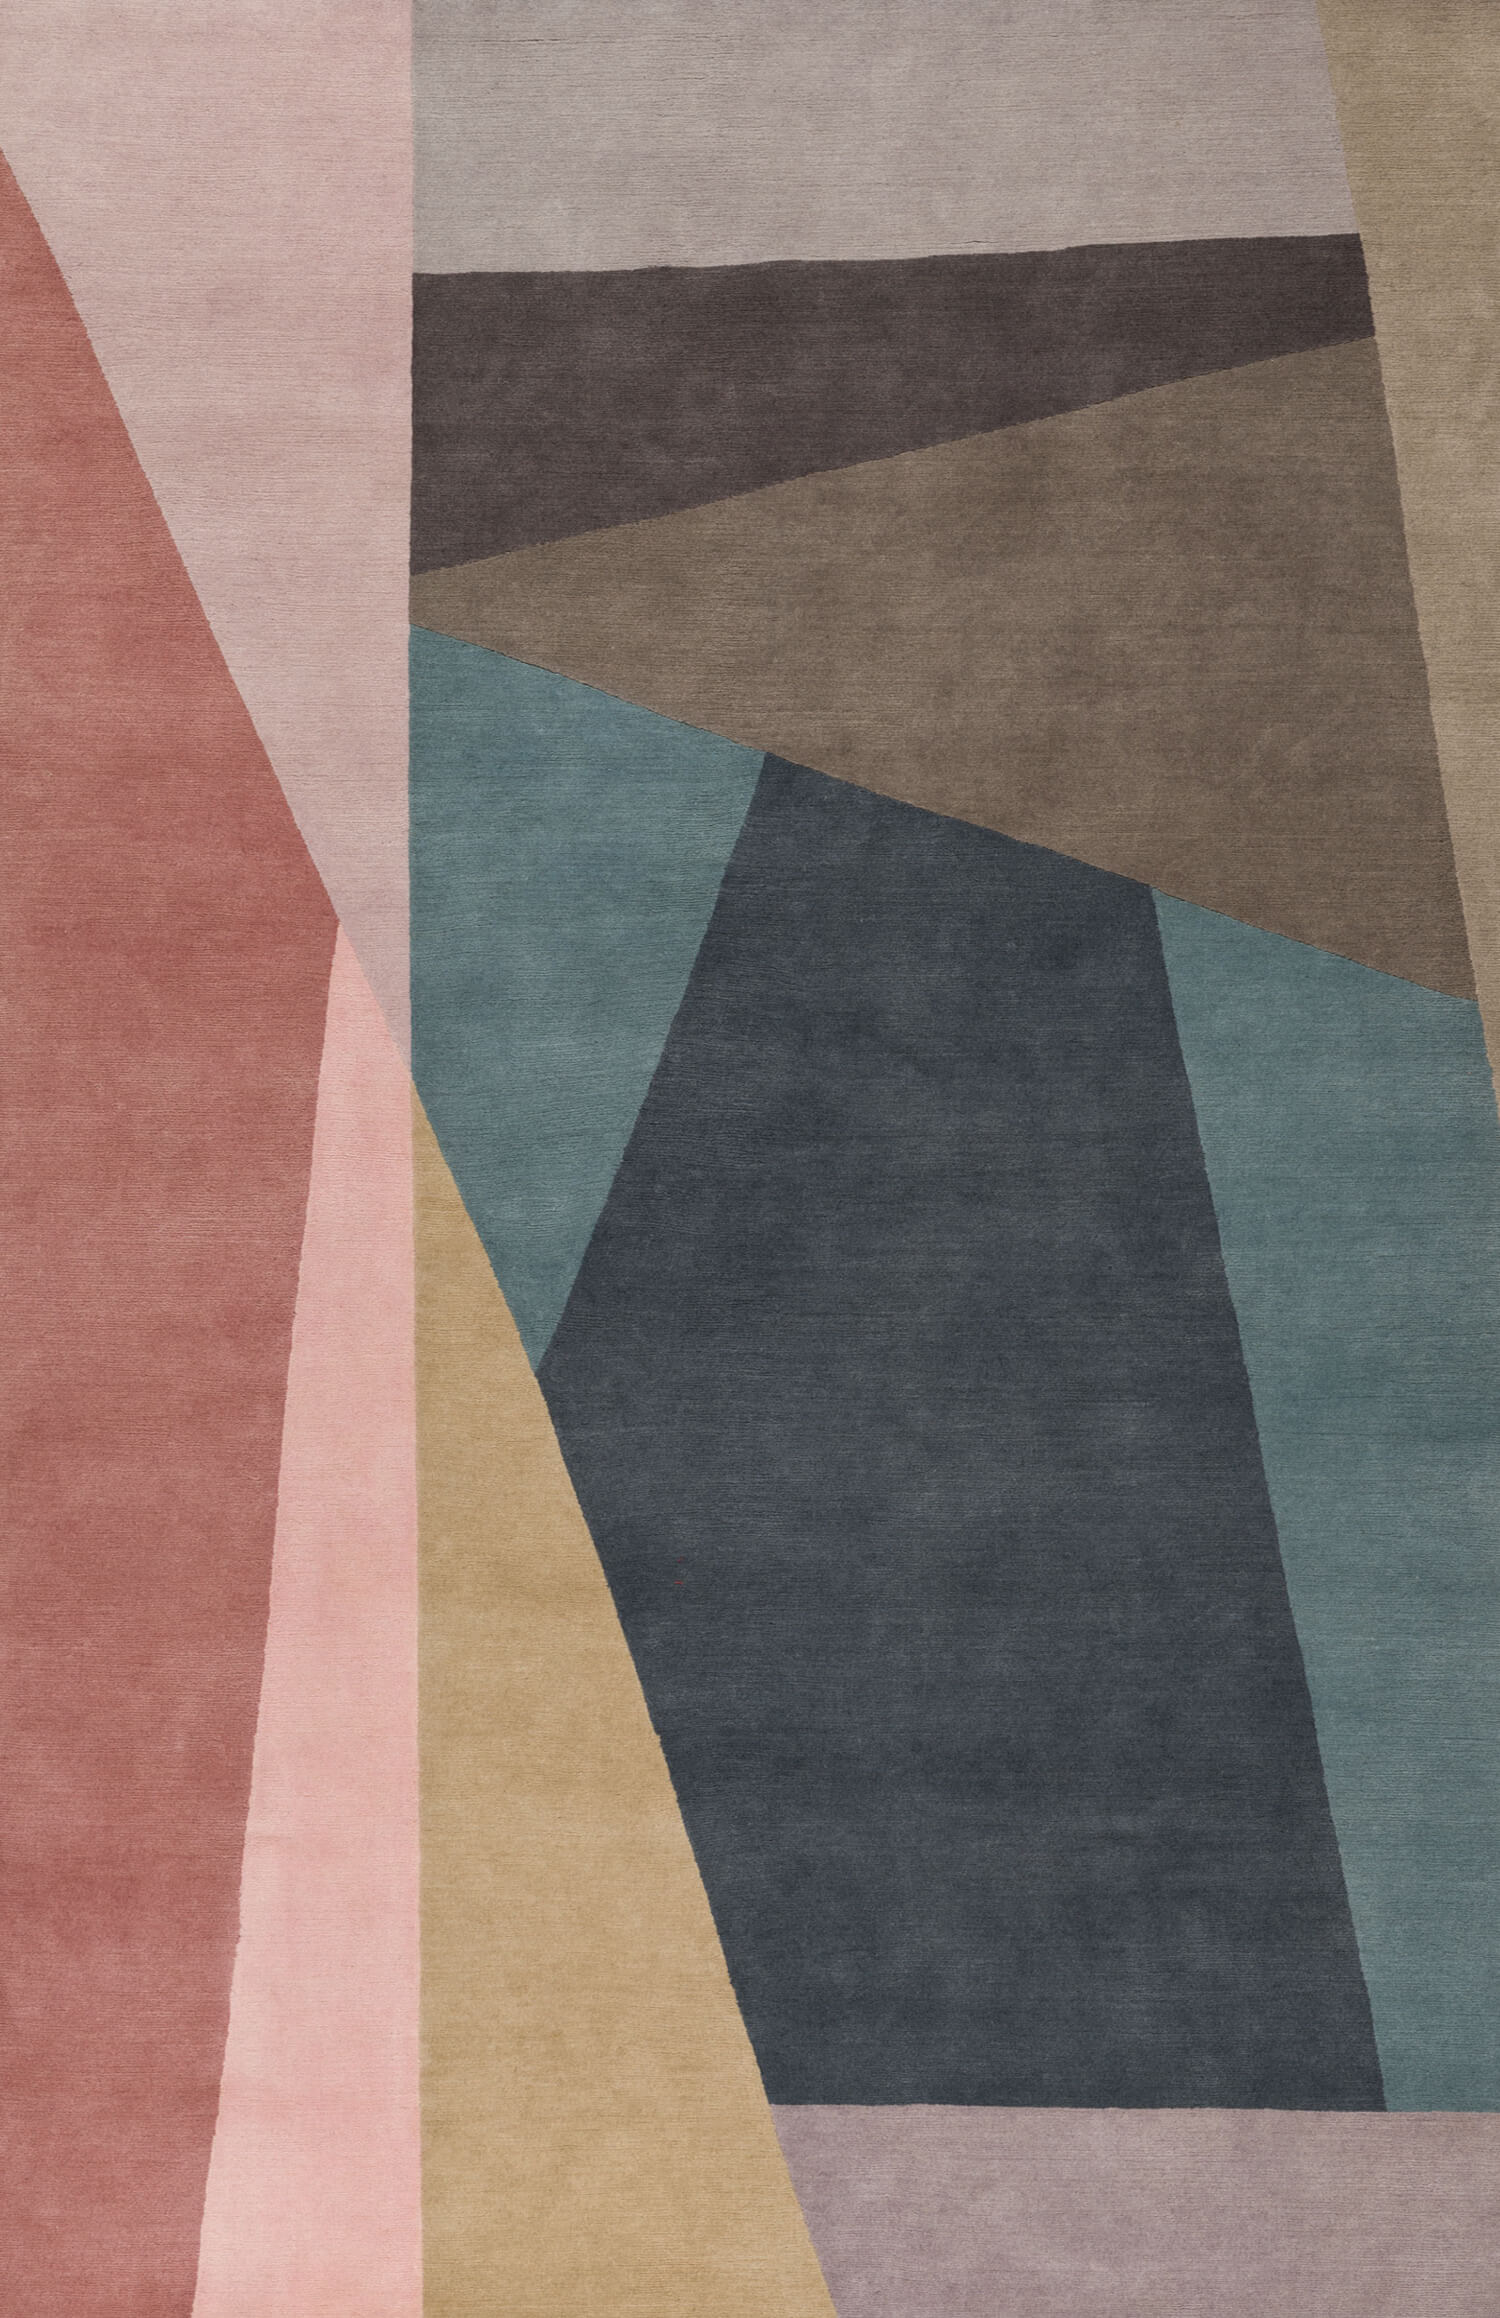 Paul Smith Split Bright for The Rug Company